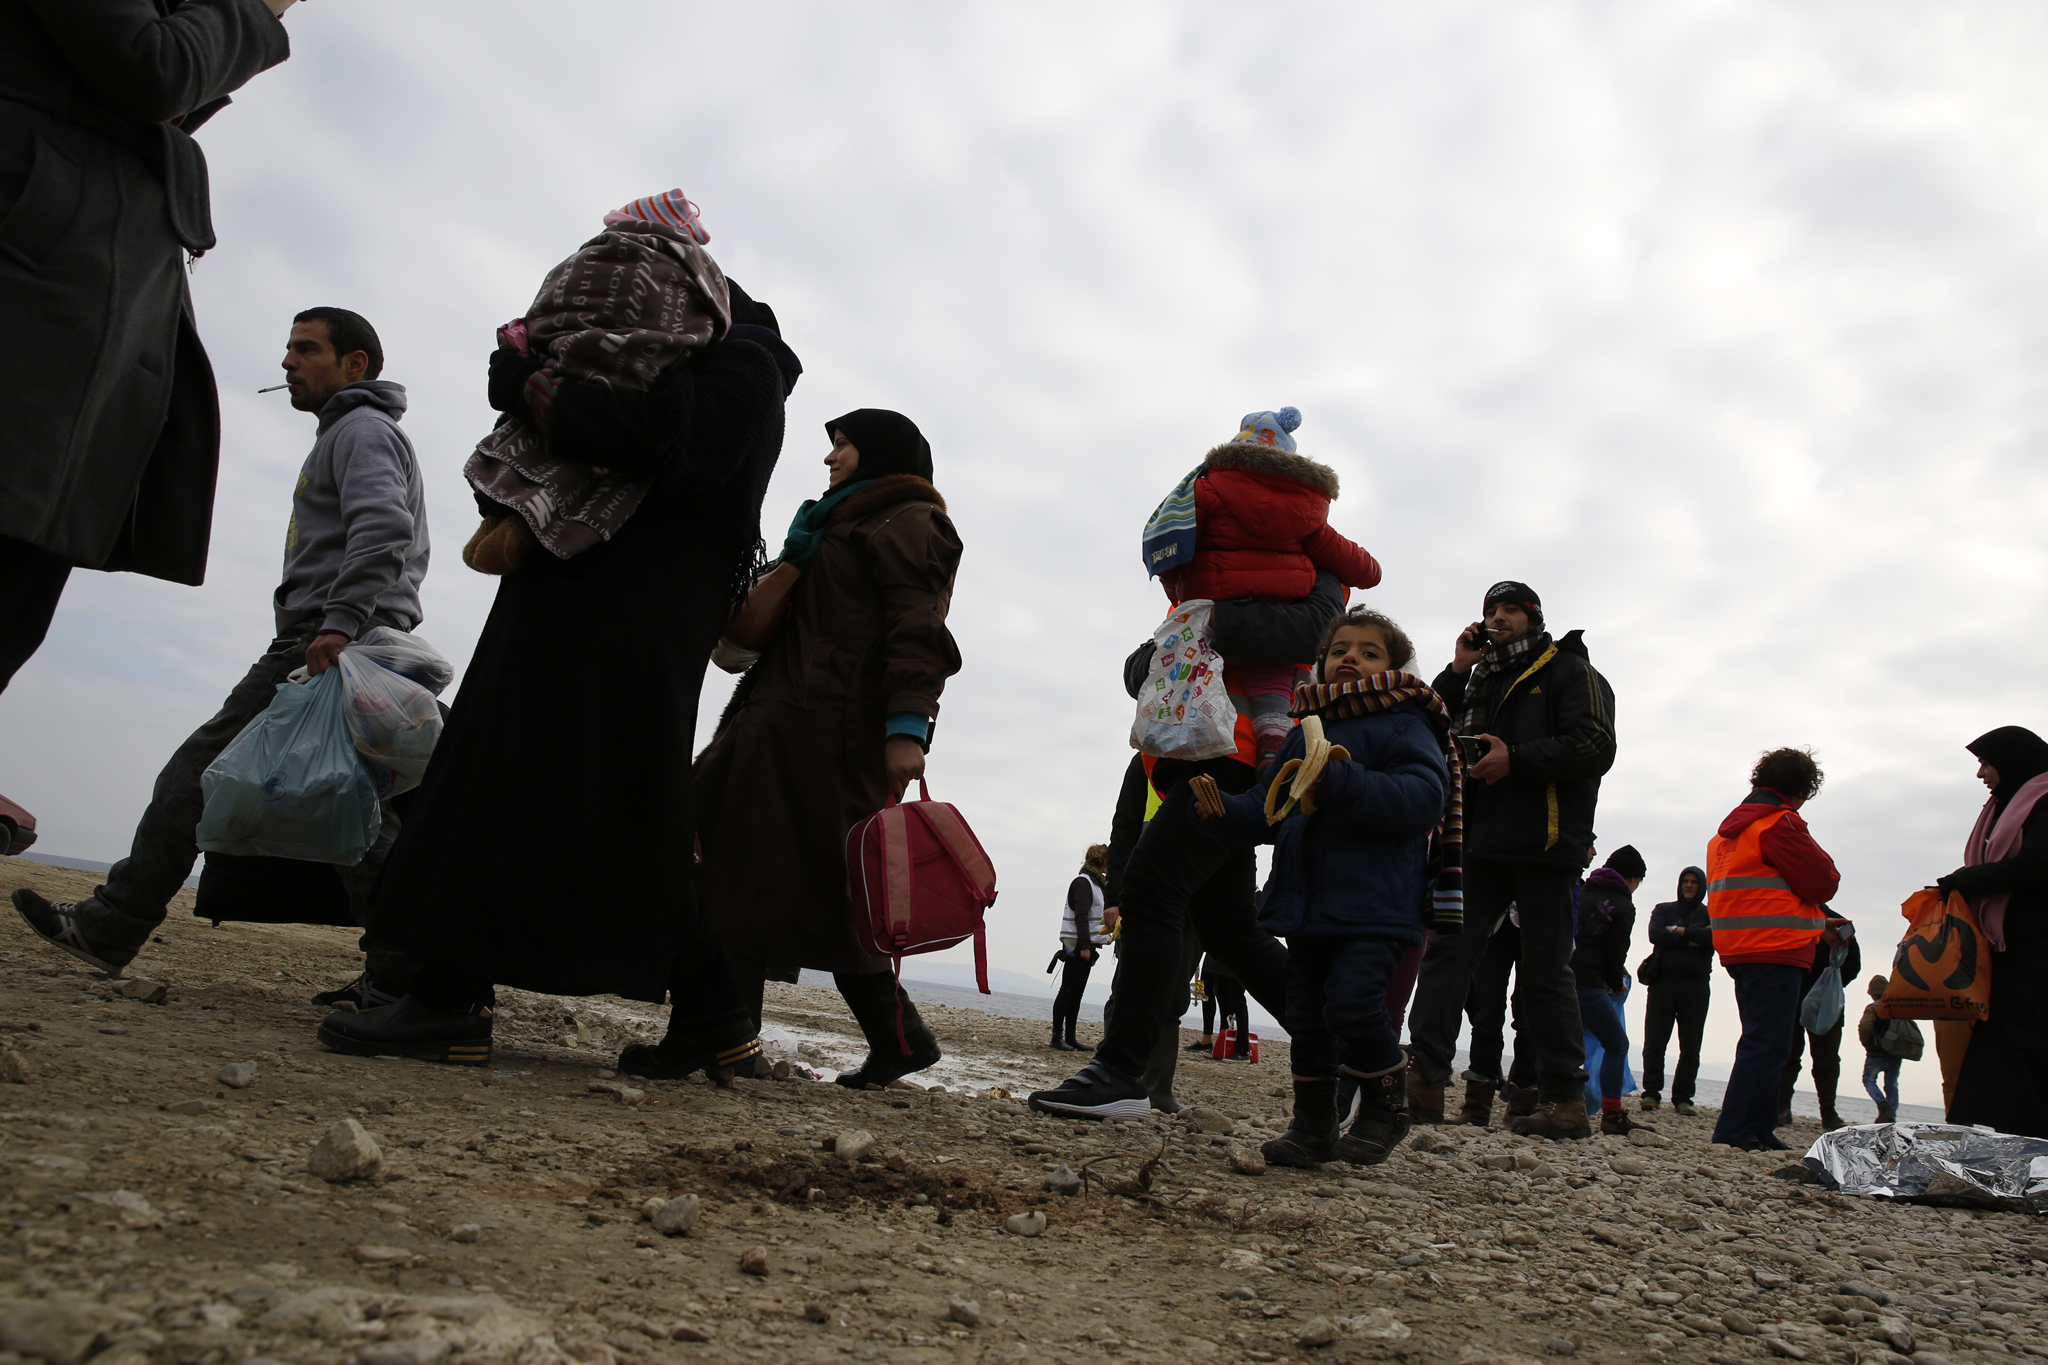 Migrants and refugees walk to a waiting bus after arriving on a rubber dinghy on a beach on the Greek island of Lesbos, January 29, 2016. Photo: Darrin Zammit Lupi